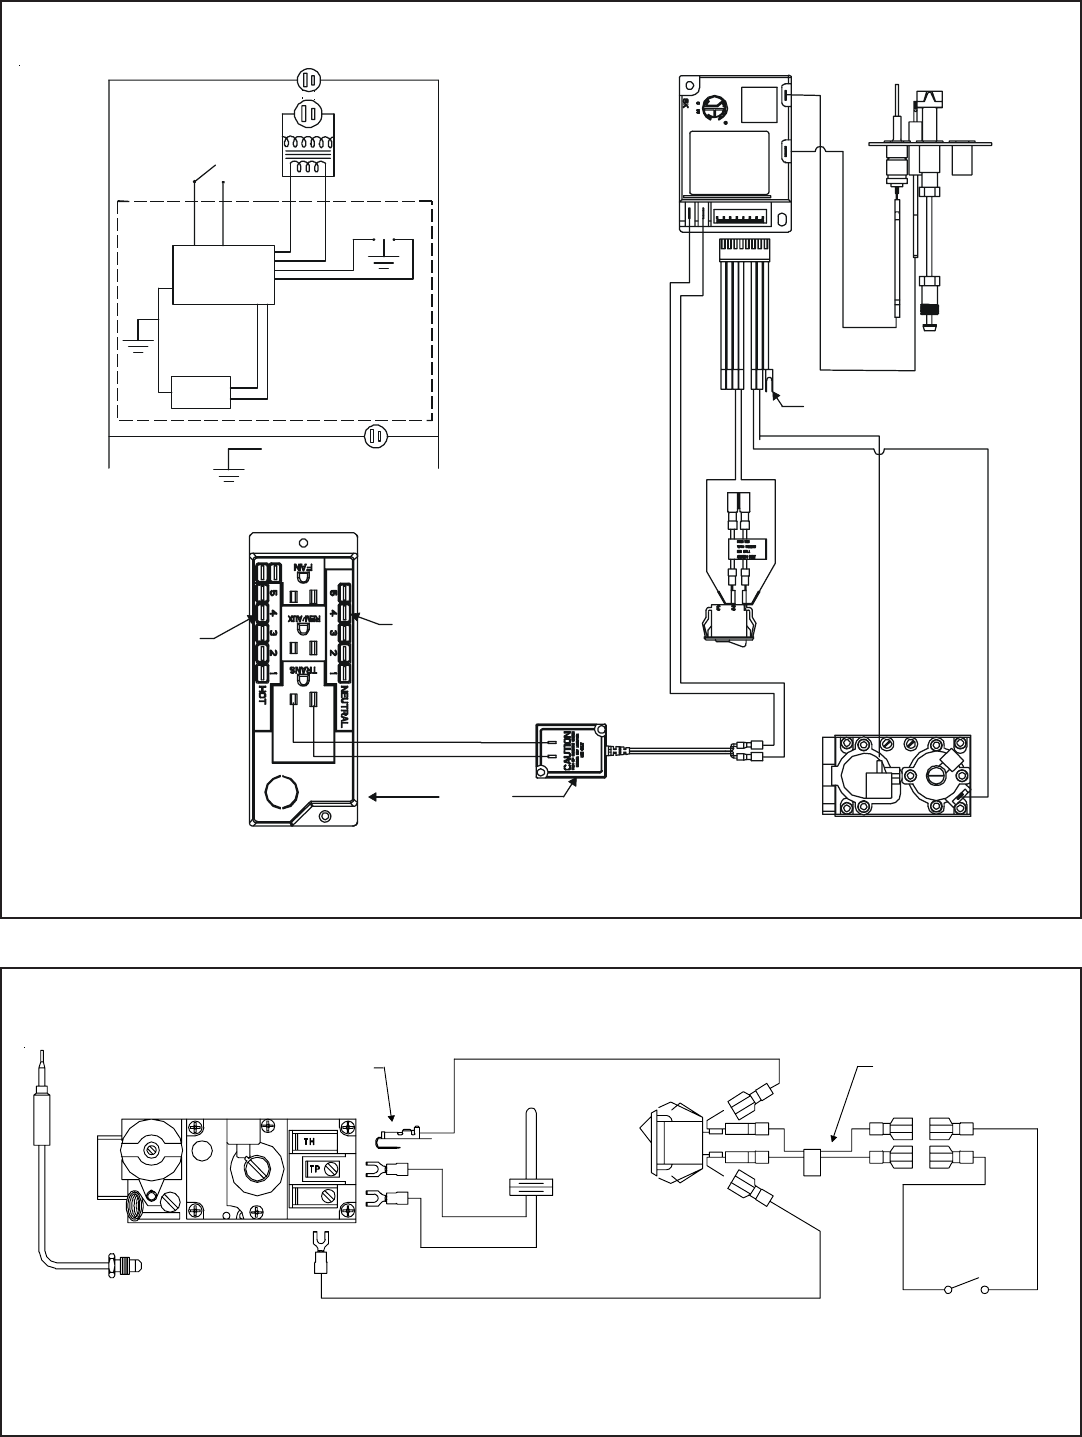 Exelent Thermopile Wiring Diagrams Gallery - Electrical System Block ...